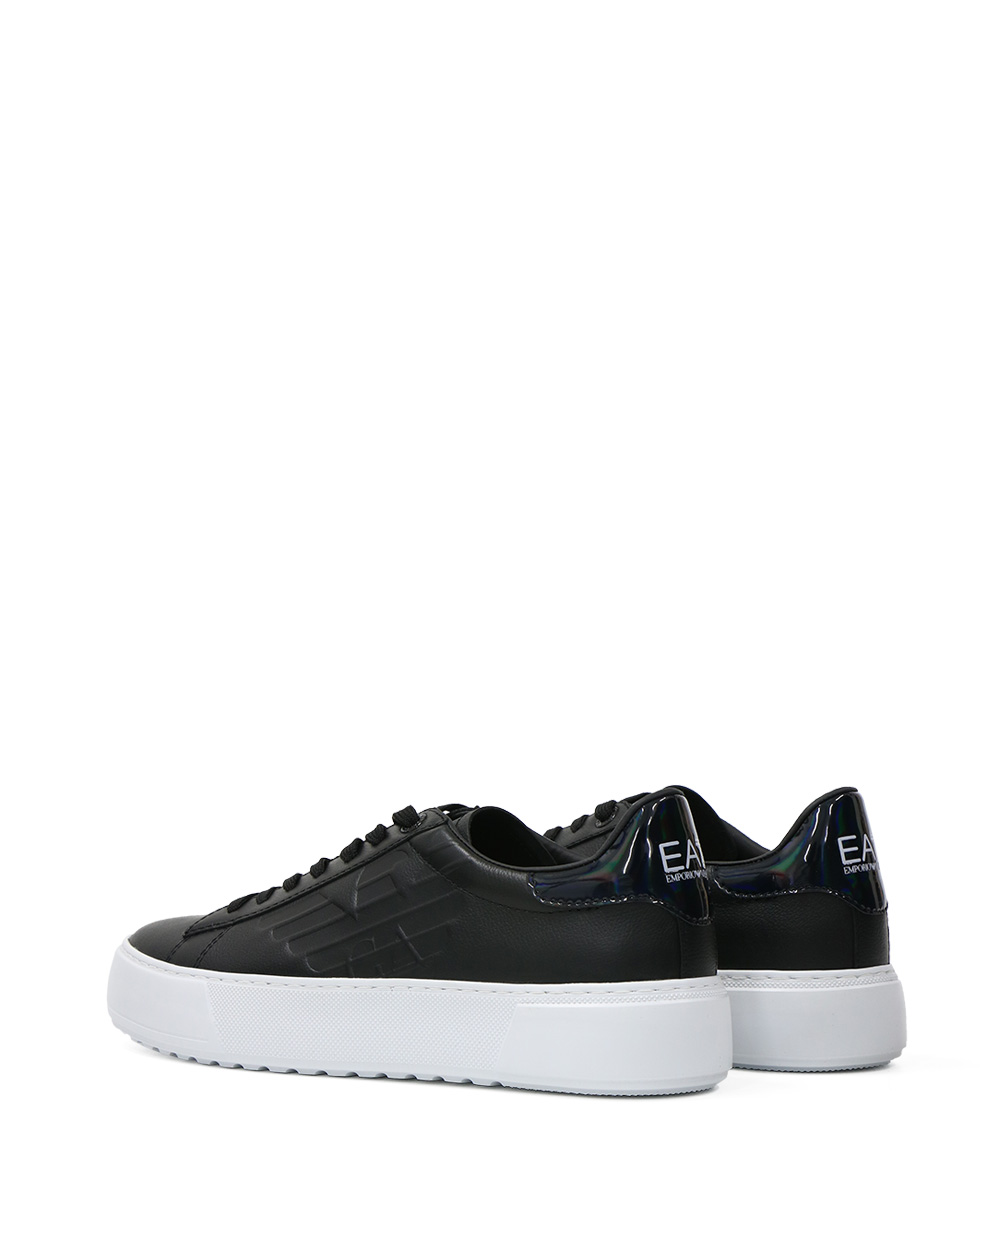 EA7 Inclining Stripes Sneakers 2